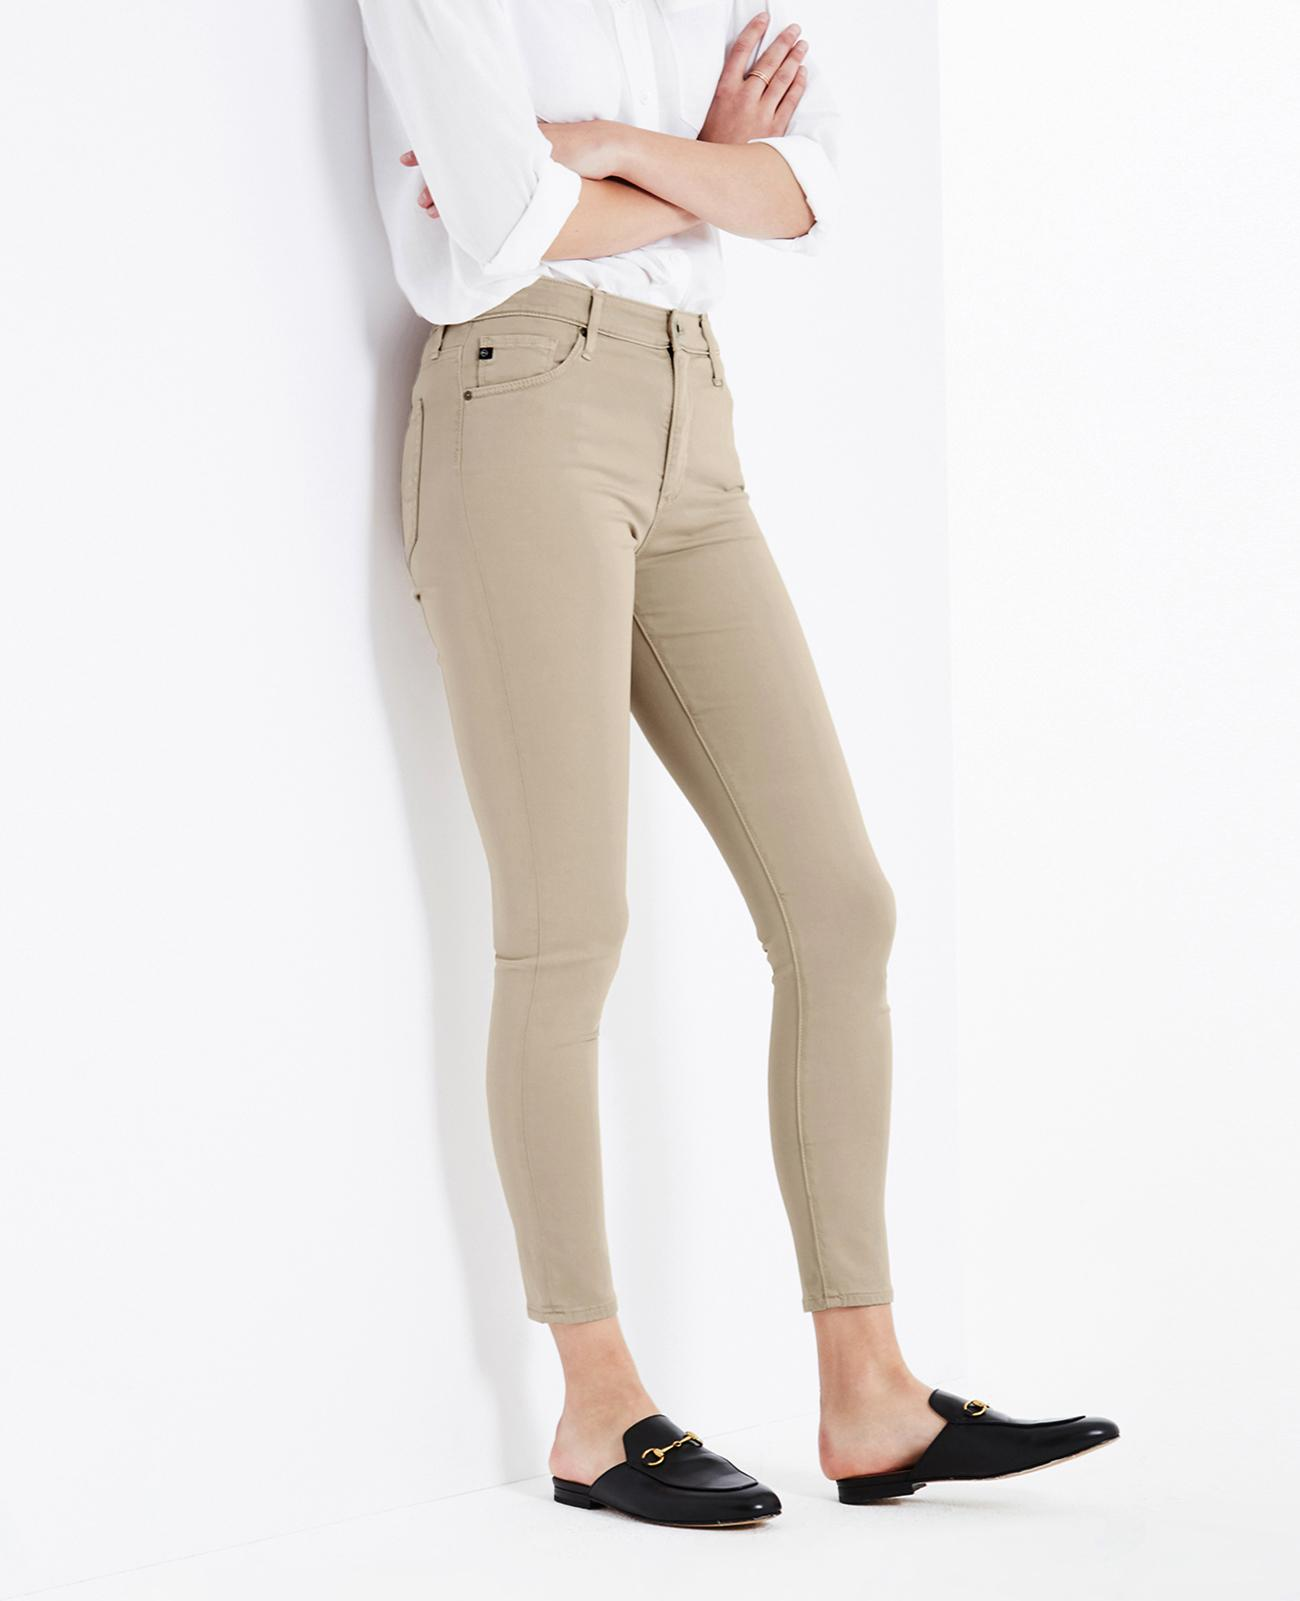 AG Adriano Goldschmied Womens Sateen Farrah High Rise Skinny Ankle